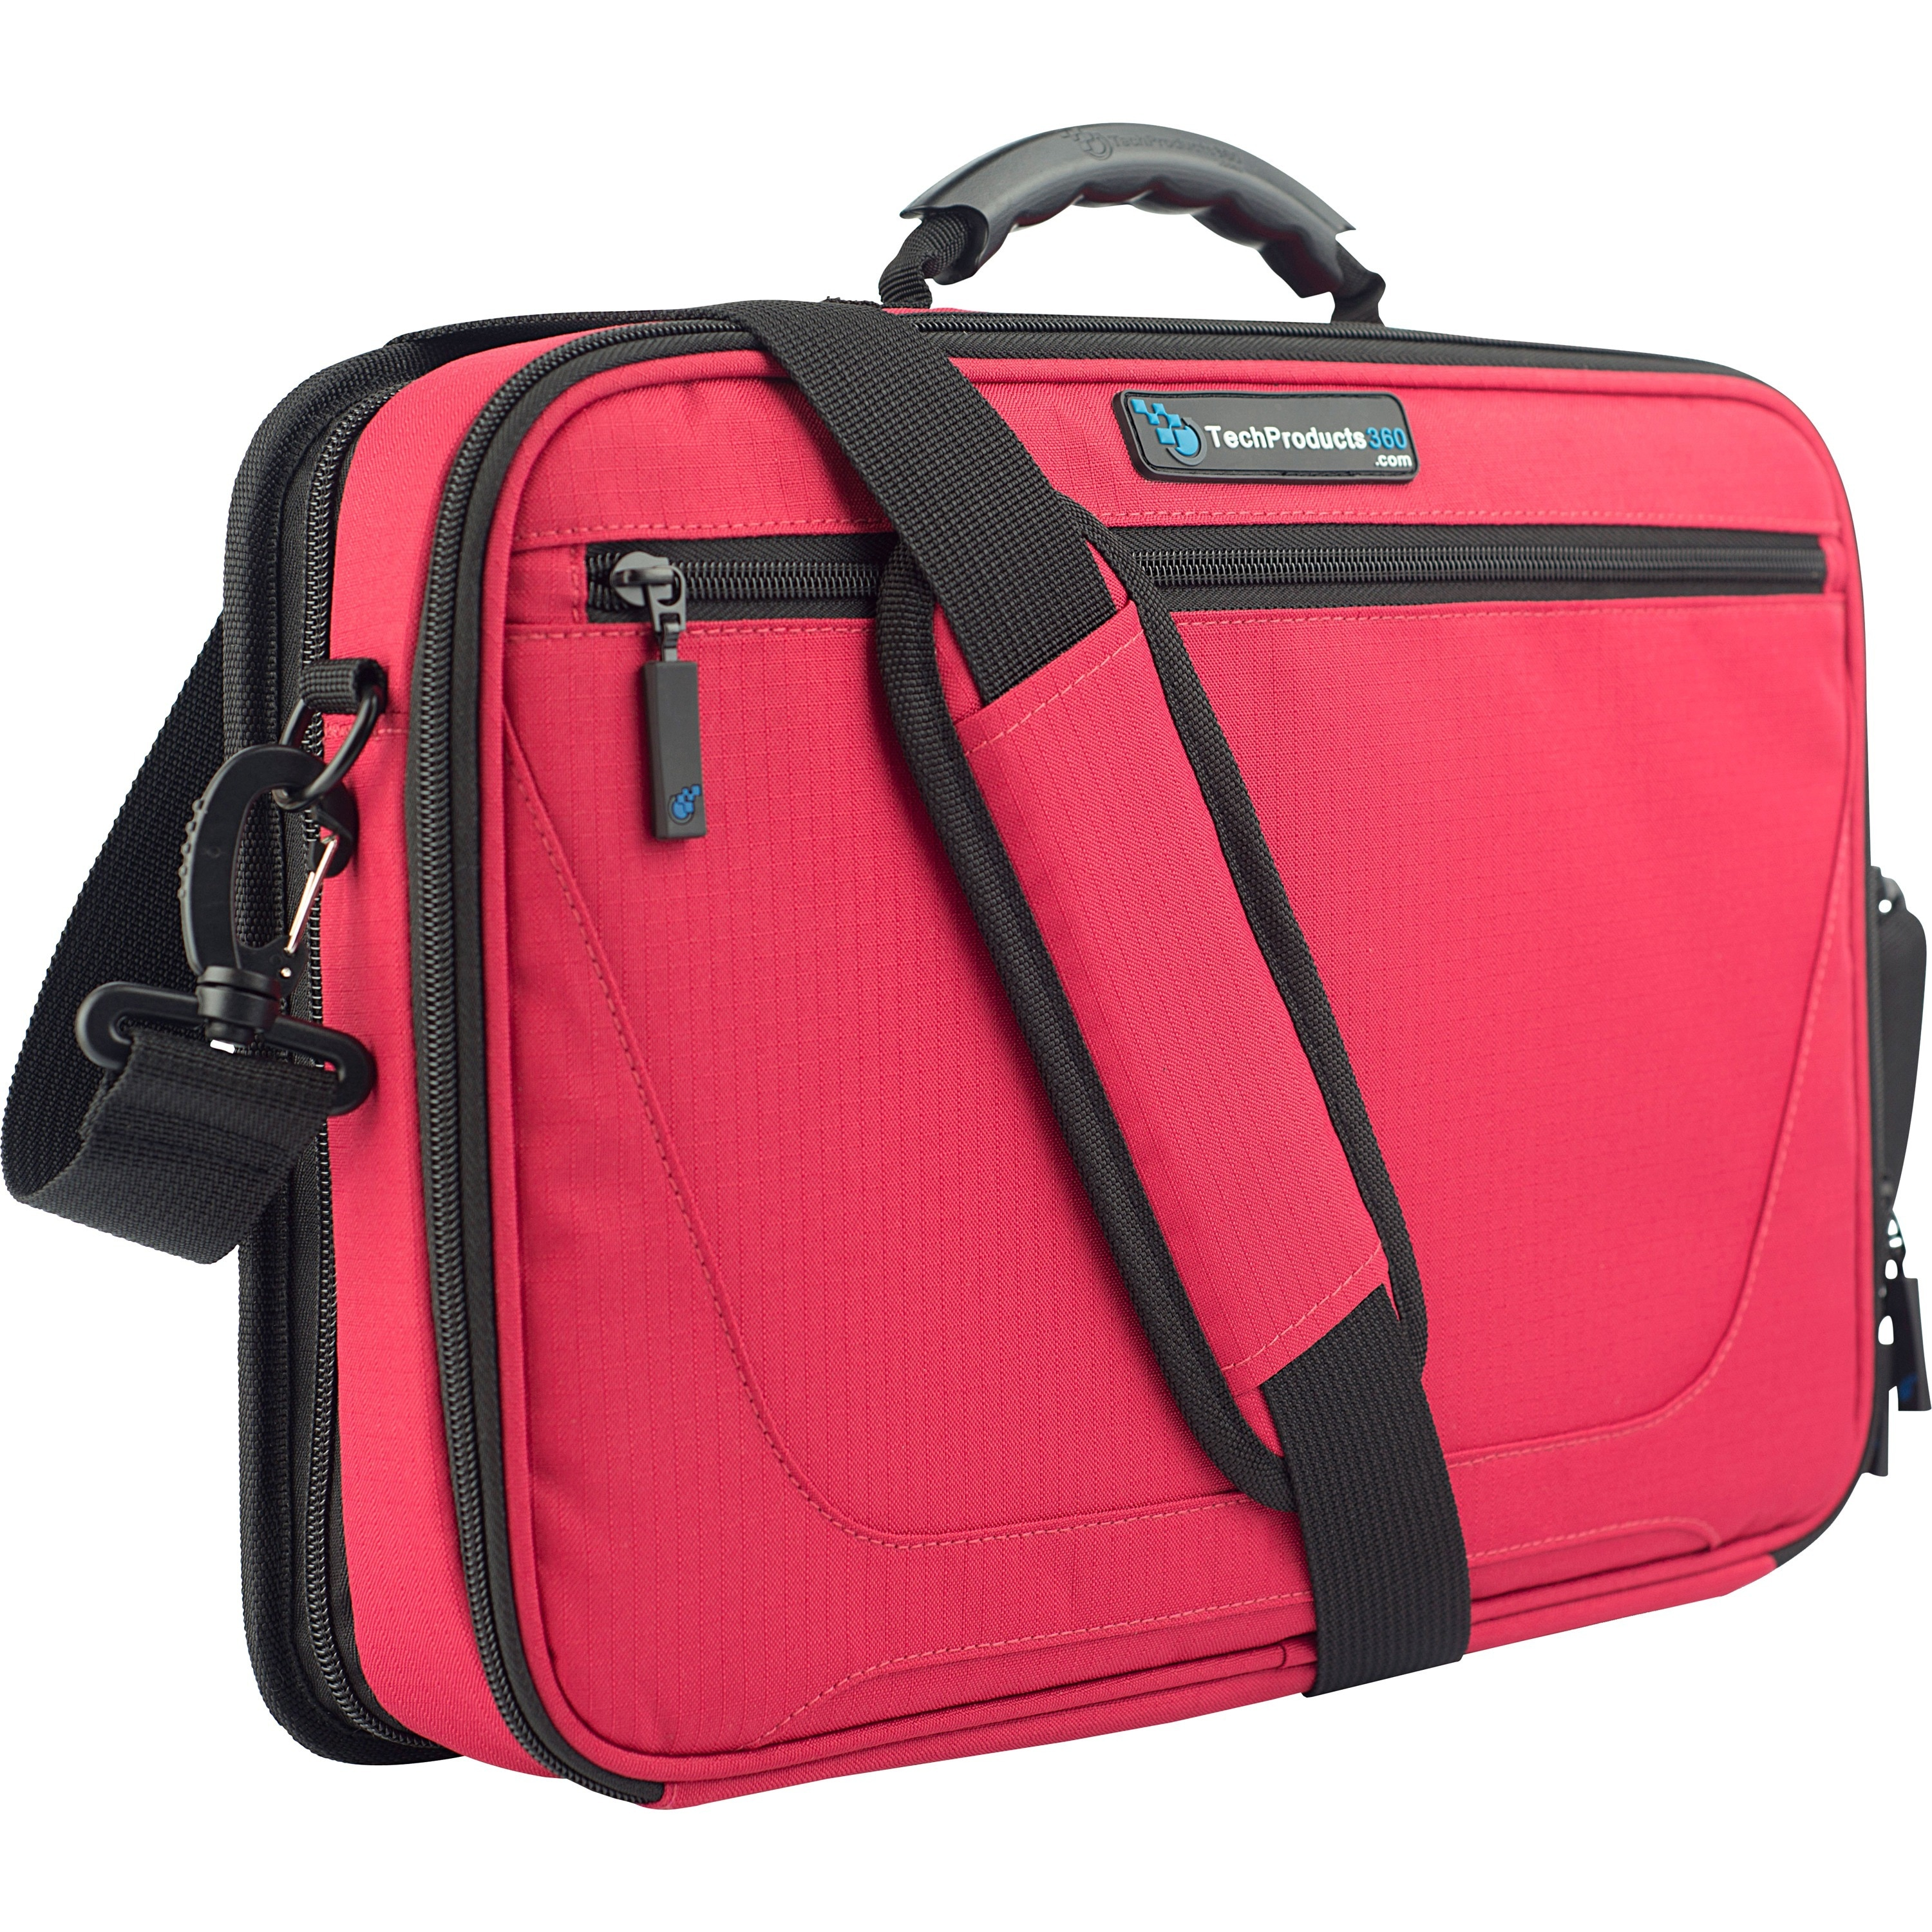 "Ato TechProducts360 Work-In Vault Carrying Case for 11"" N..."